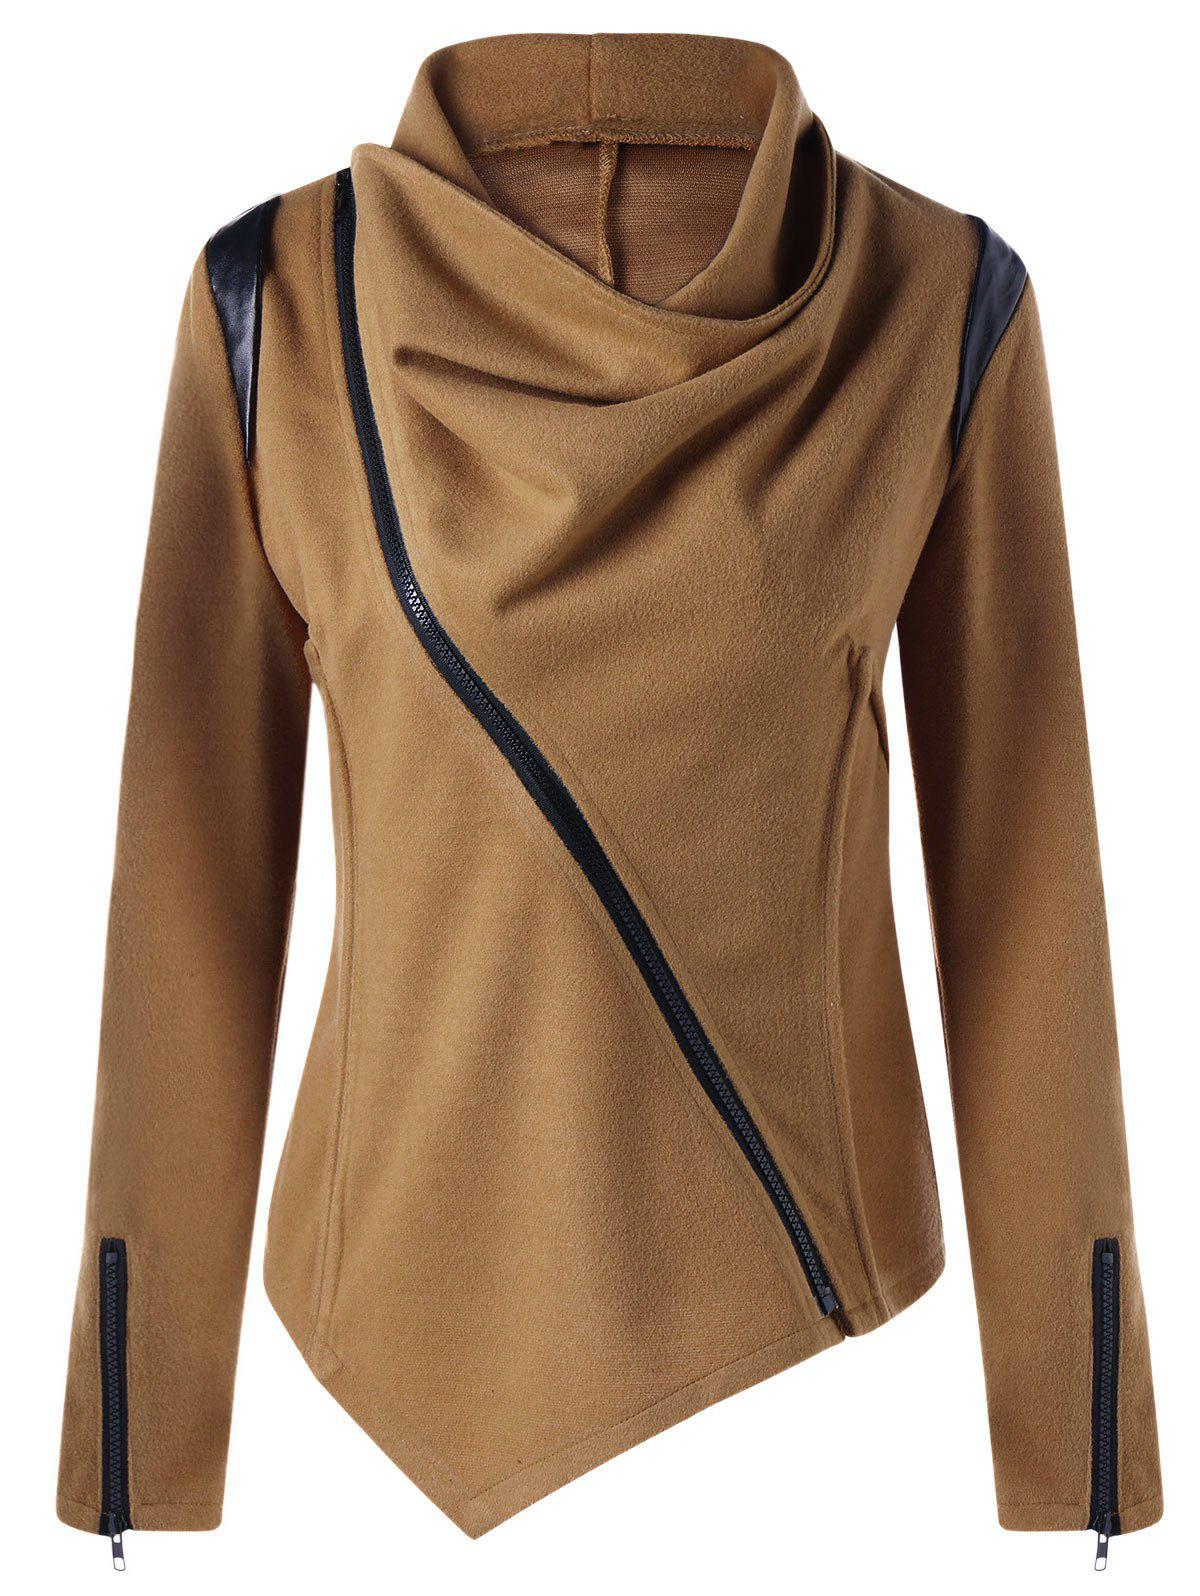 Zip Cuff Cowl Neck Asymmetrical JacketWOMEN<br><br>Size: M; Color: CAMEL; Clothes Type: Jackets; Material: Polyester; Type: Slim; Shirt Length: Long; Sleeve Length: Full; Collar: Cowl Neck; Pattern Type: Solid; Embellishment: Zippers; Style: Fashion; Season: Fall,Spring; Weight: 0.5000kg; Package Contents: 1 x Jacket;